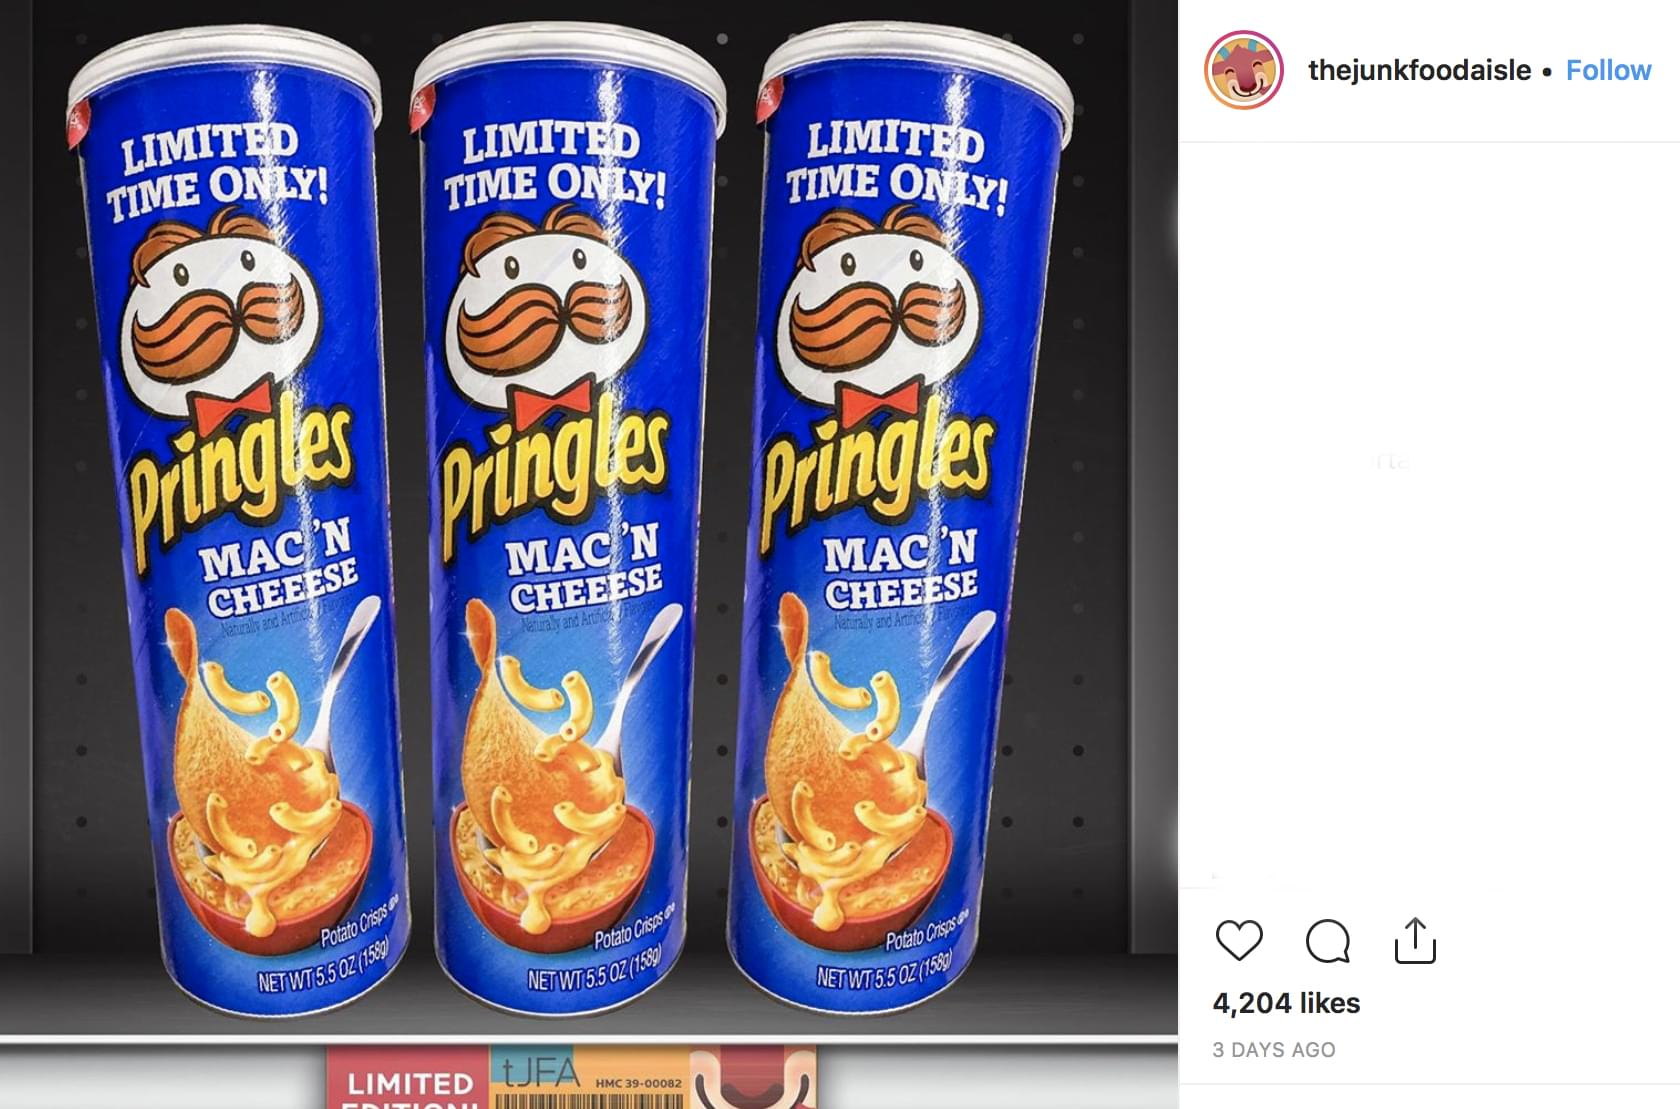 Pringles newest flavor: Mac & Cheese!